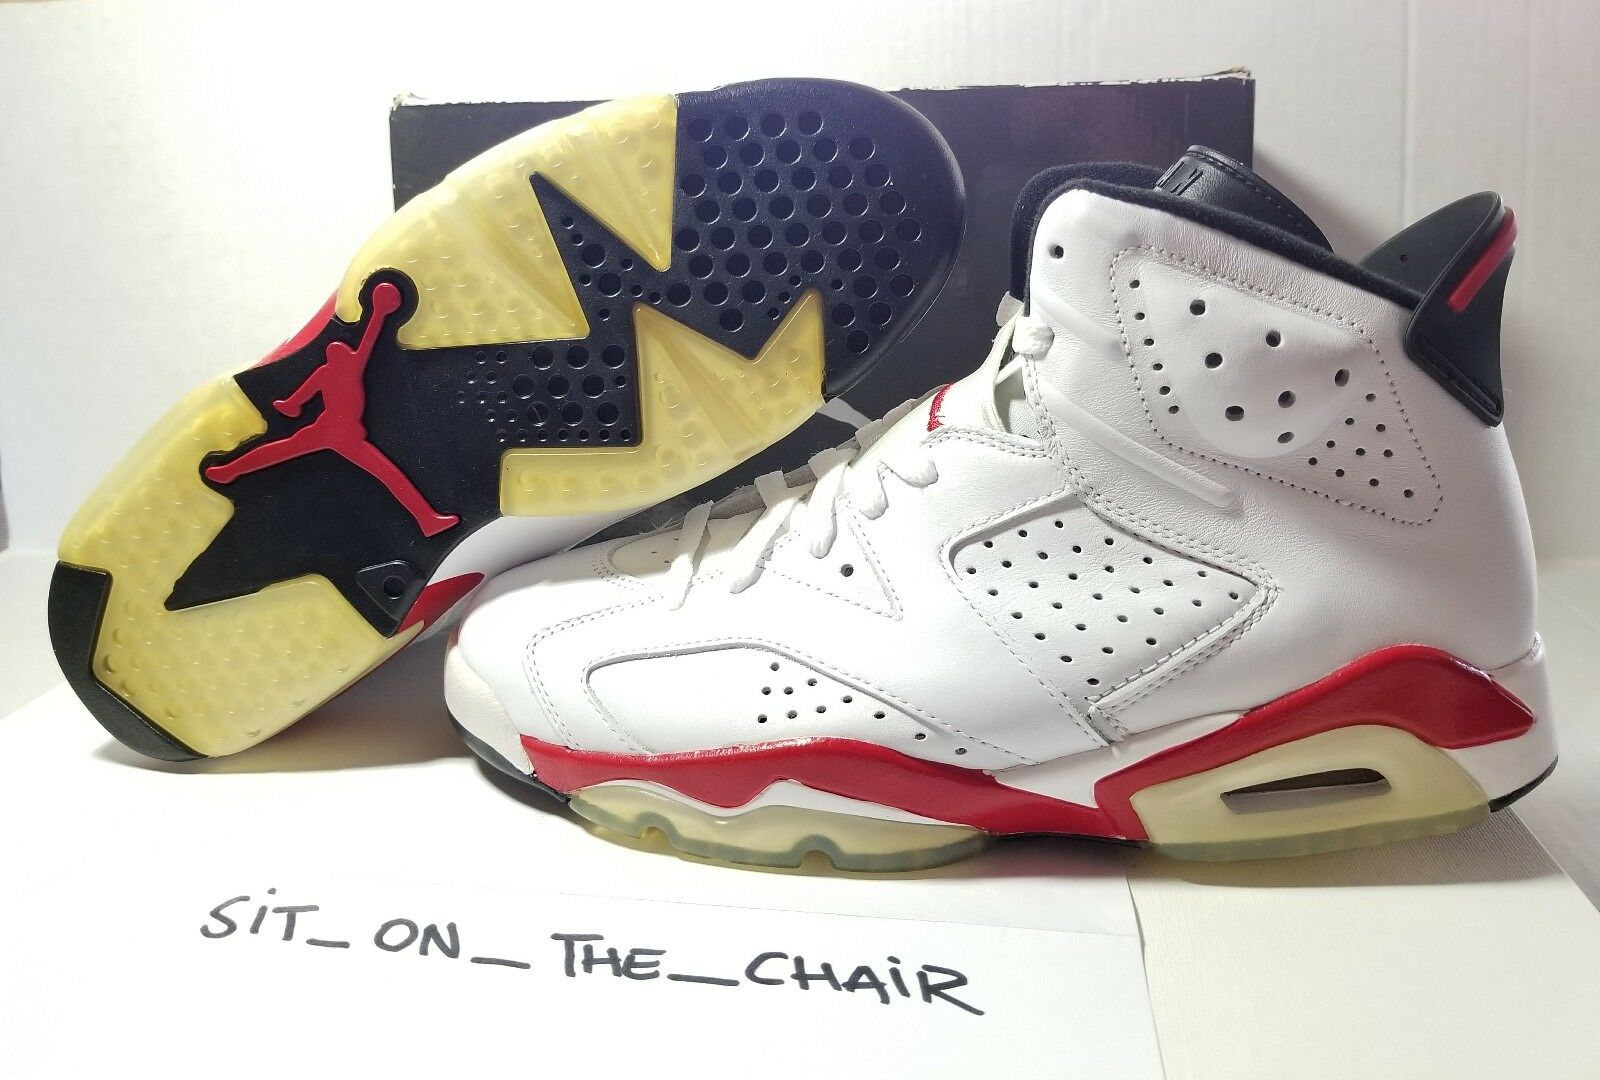 62642e06440c Nike Air Jordan 6 Retro White-varsity Red-black Sz 10 Bulls 384664 ...